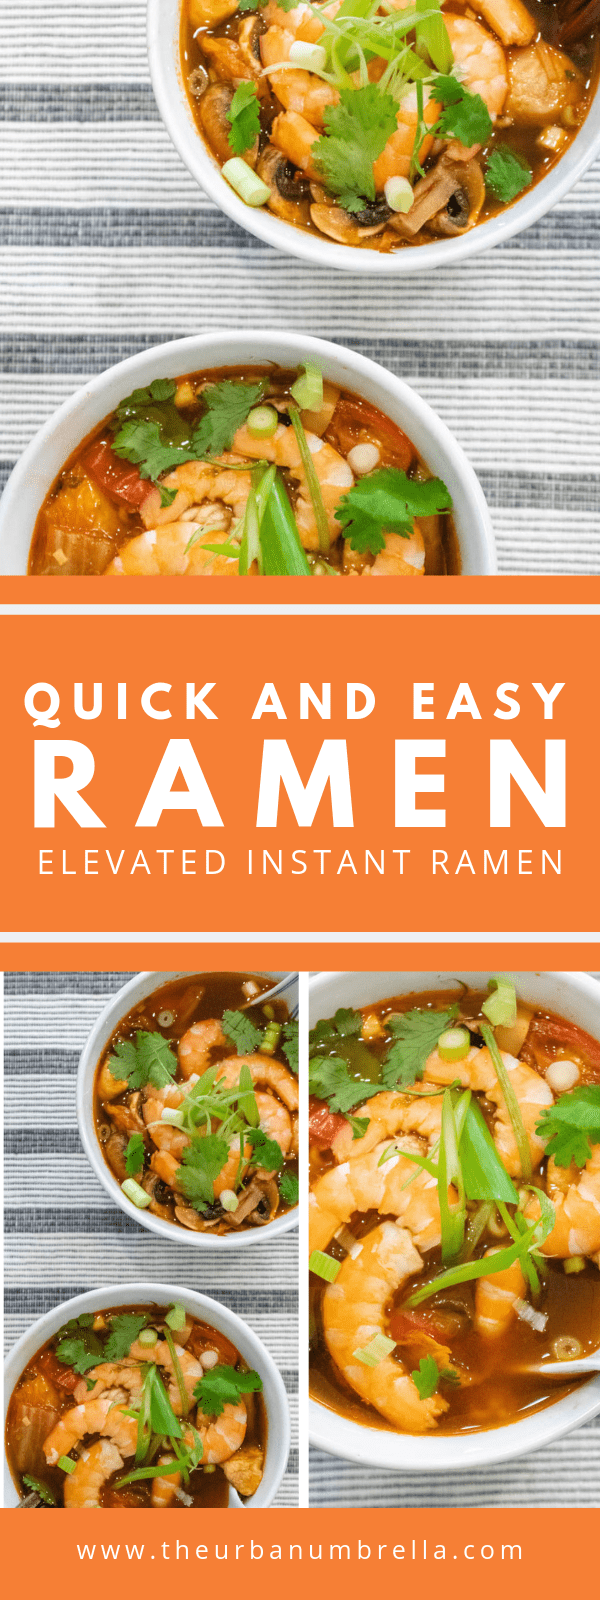 Looking for a delicious, fast, and affordable dinner recipe? This is the one for you! It only takes 30 minutes to whip up, it tastes amazing, and it'll give you leftovers for days!